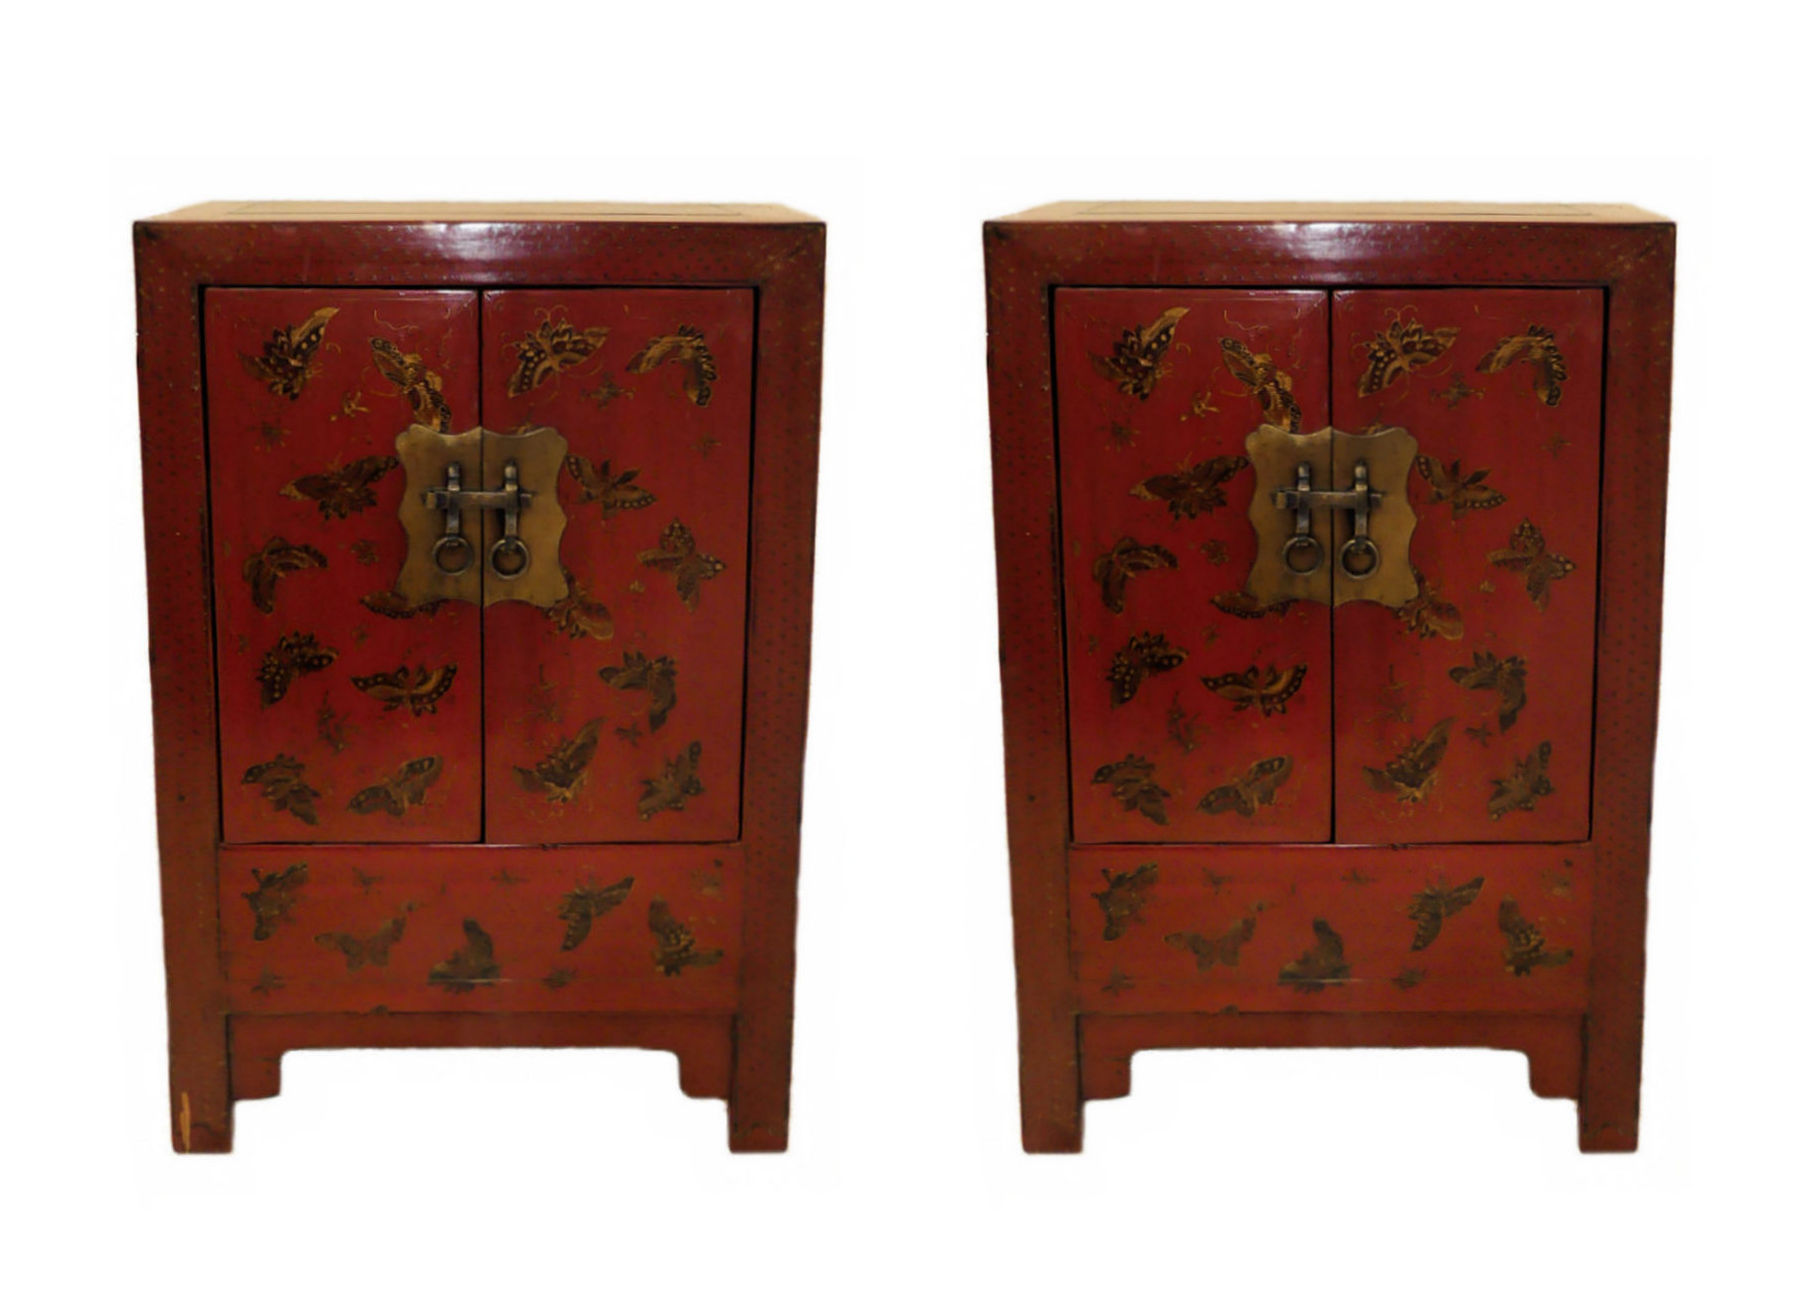 SOLD Pair of Paint Decorated Asian Chinoiserie Nightstands or End Tables